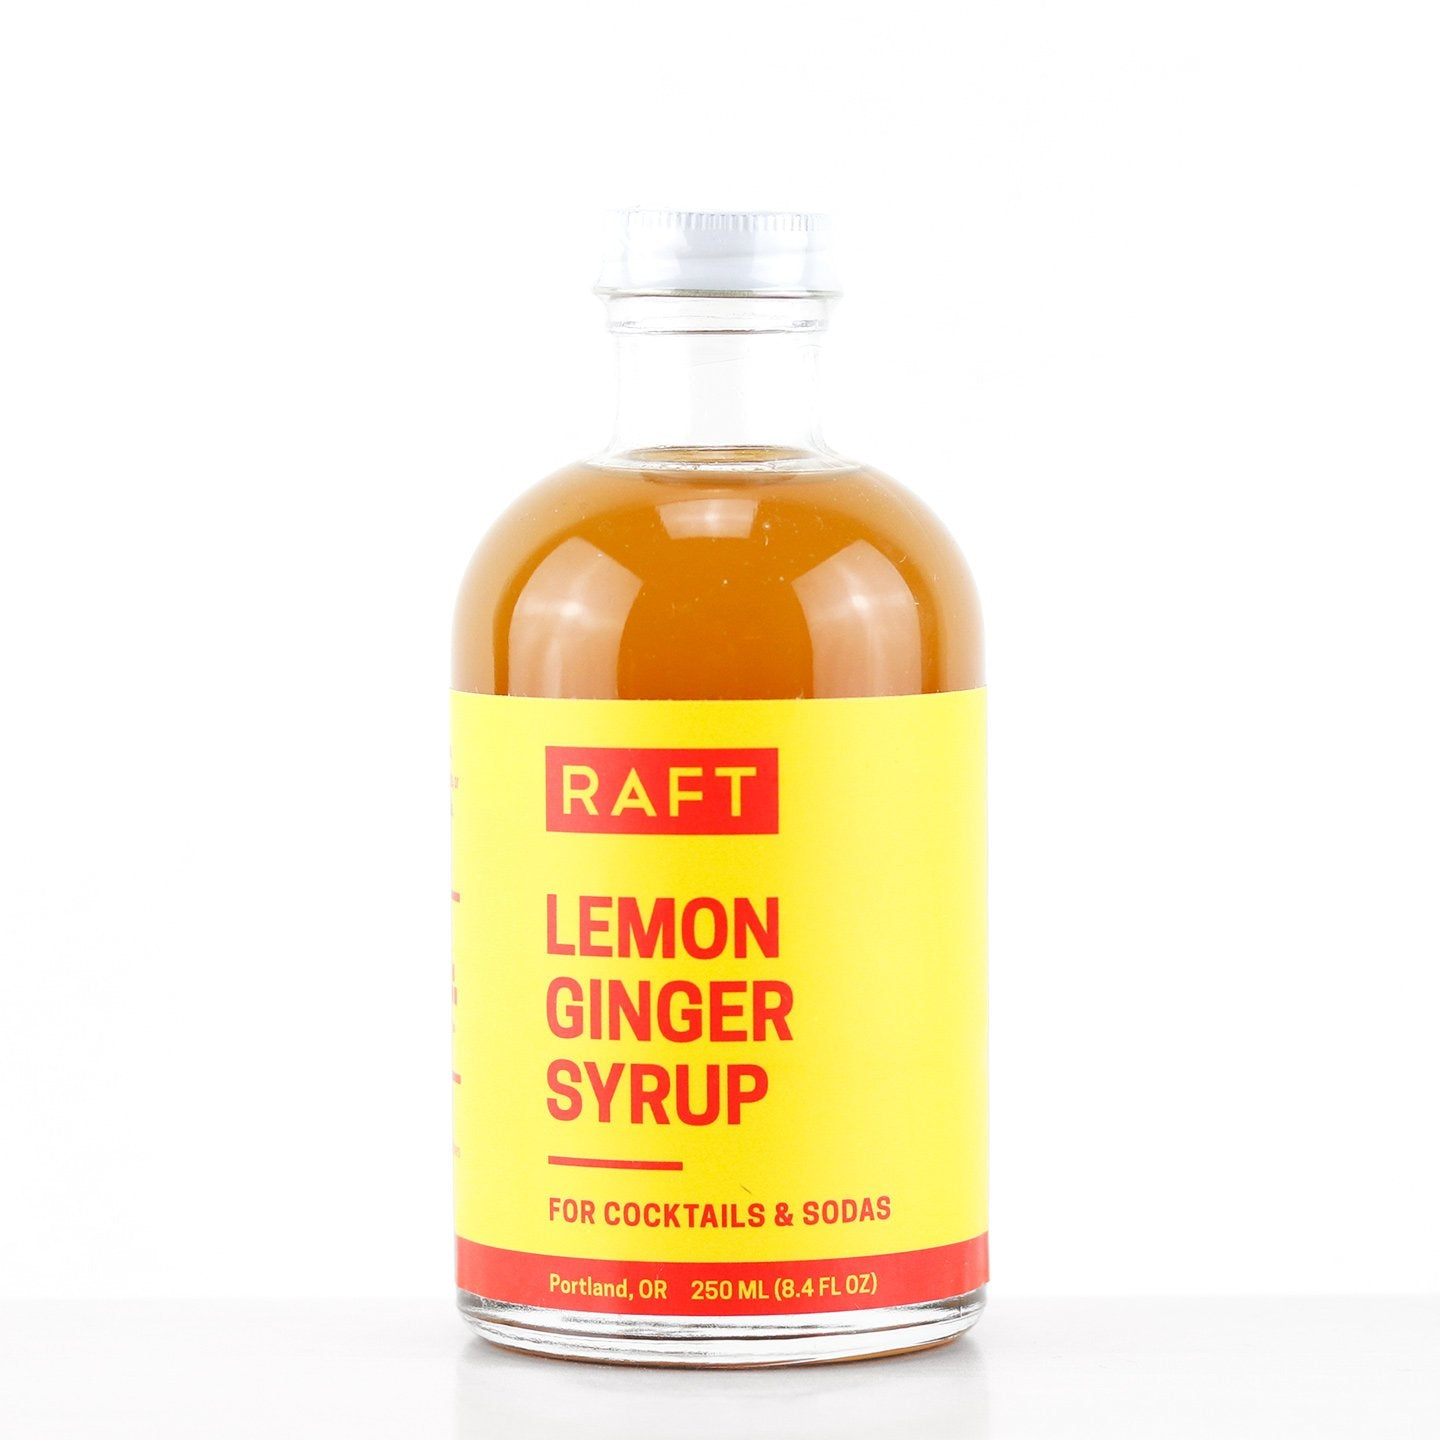 Raft Lemon Ginger Syrup